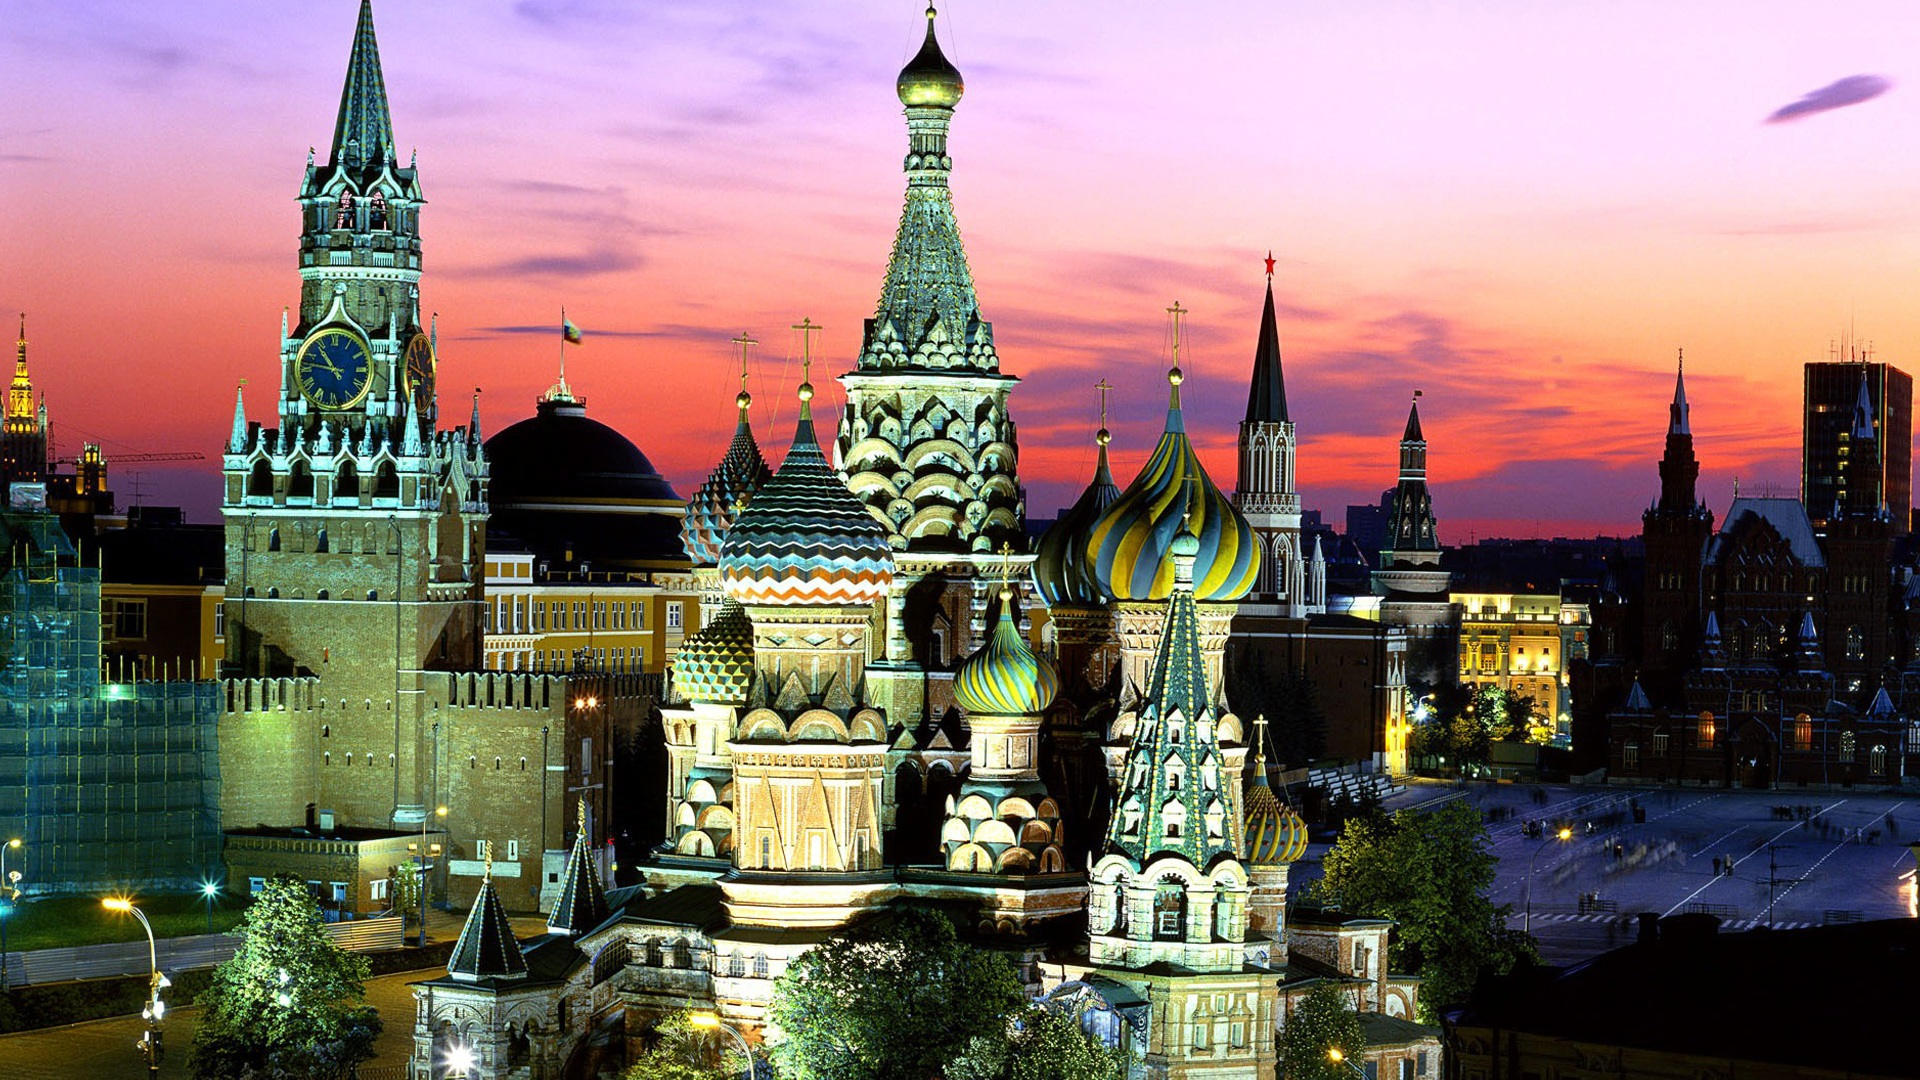 wallpaper russia moscow night 1920x1200 hd picture image